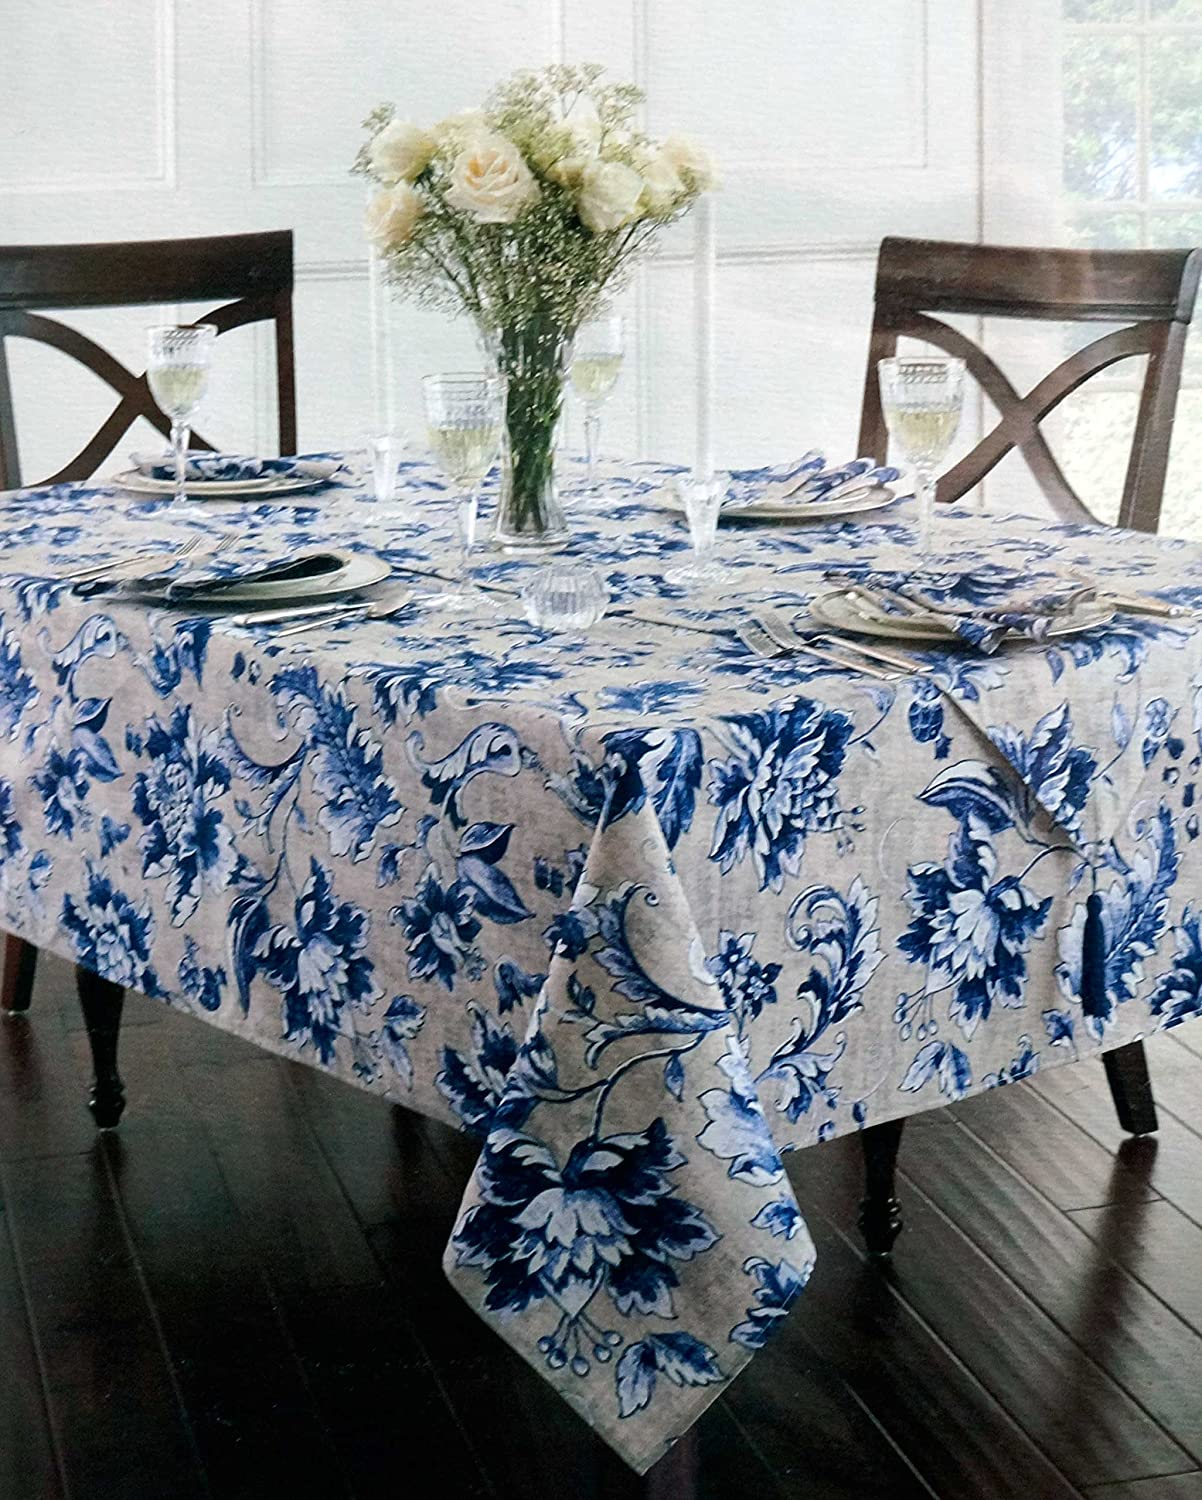 Ralph Lauren Table Linens Part - 18: Amazon.com: Waterford Linens Fabric Tablecloth Oblong Rectangular Blue And  White Leaf Floral Pattern On Beige 60 X 84: Home U0026 Kitchen